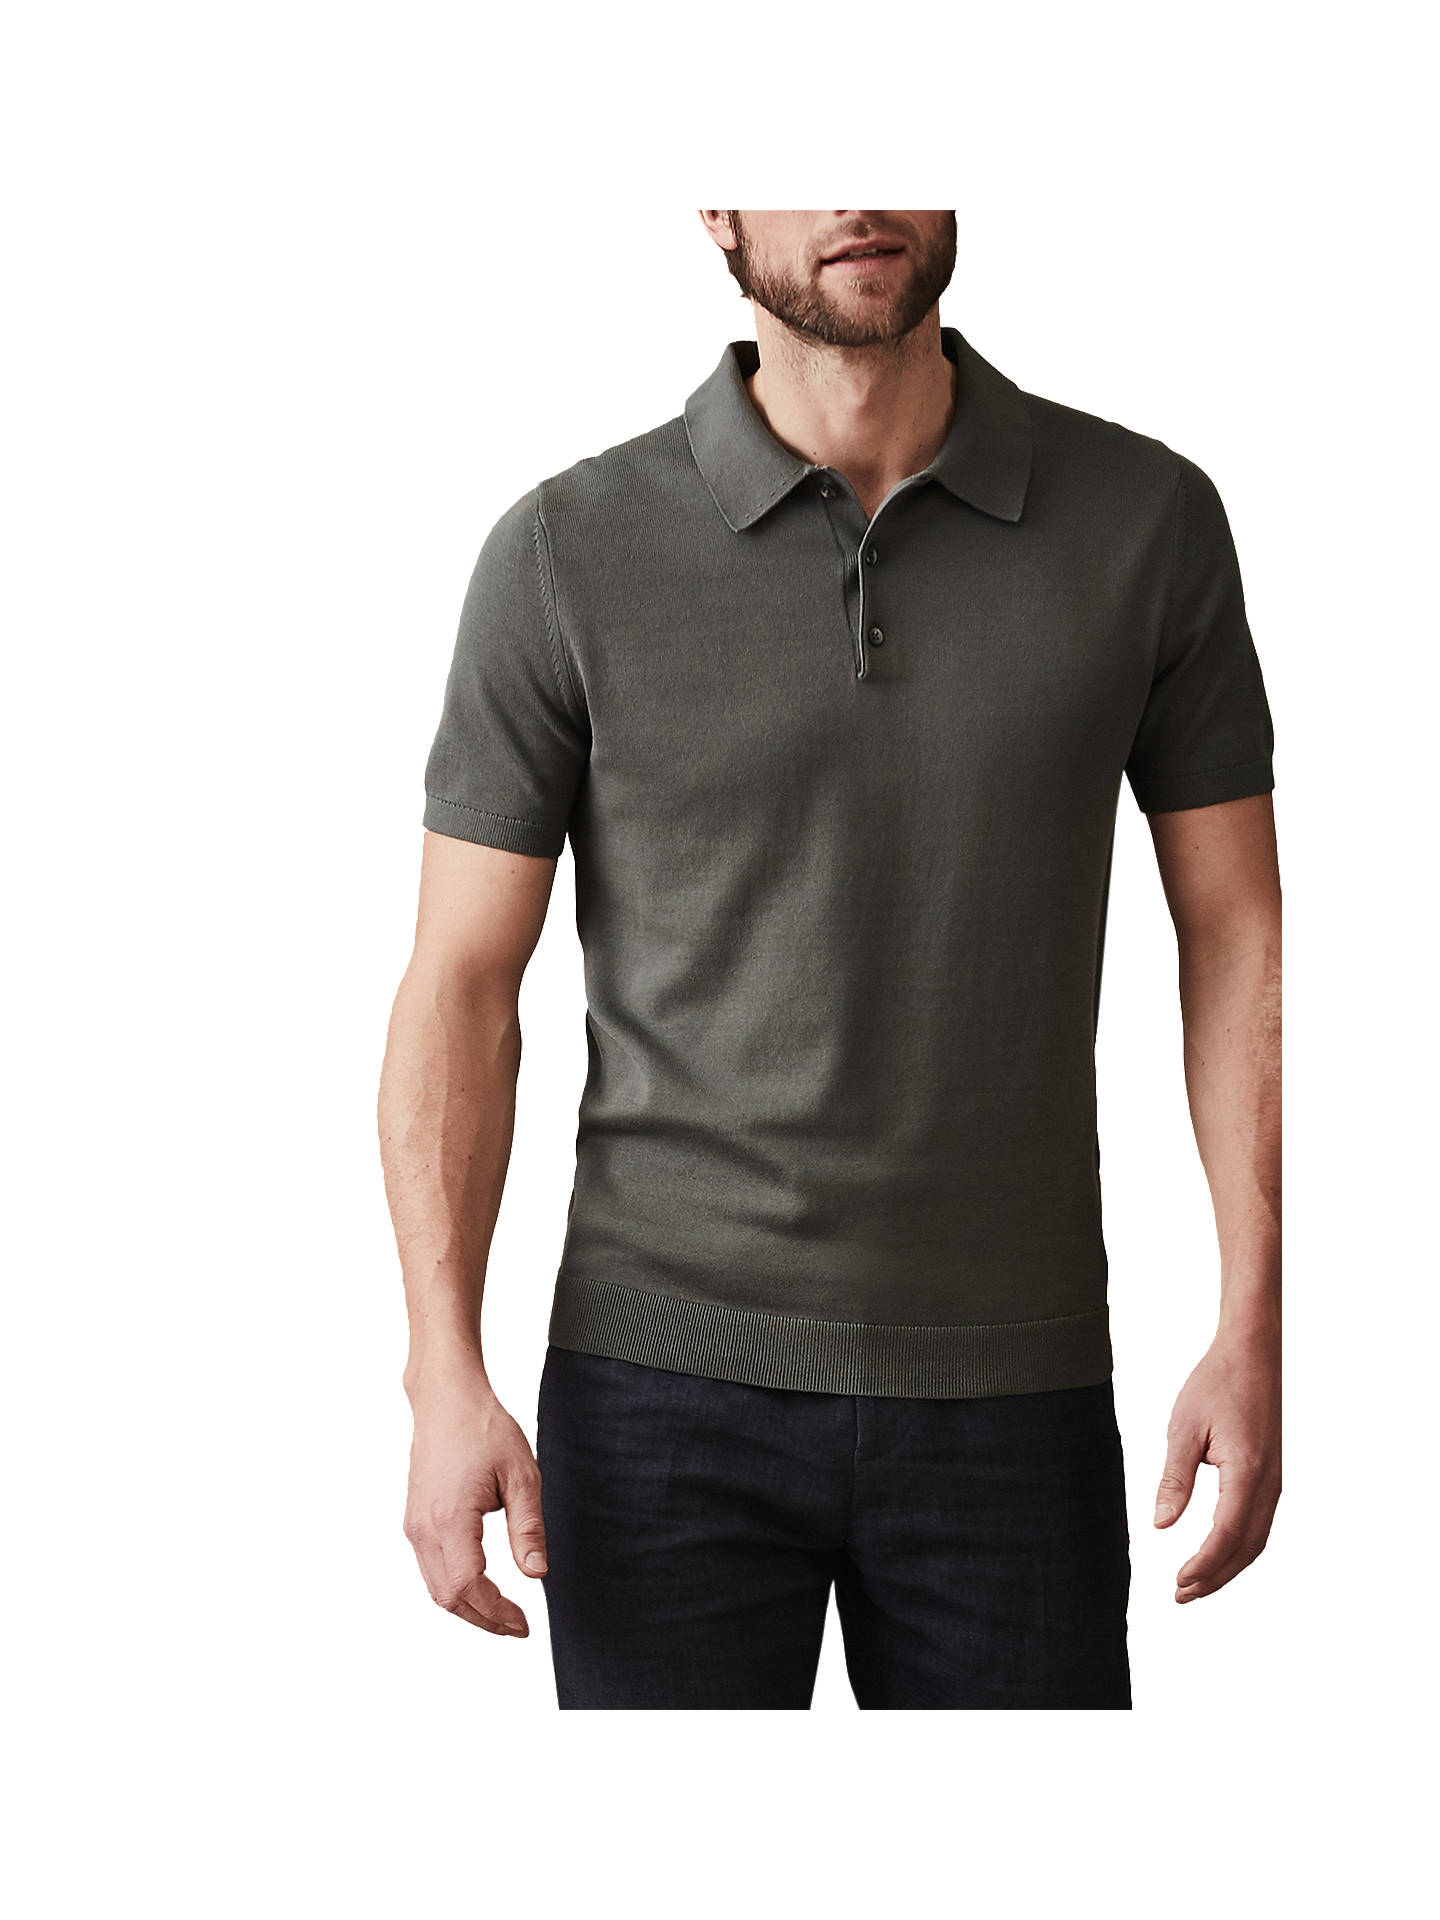 Buy Reiss Varsity Slim Fit Short Sleeve Polo Shirt, Sage, S Online at johnlewis.com